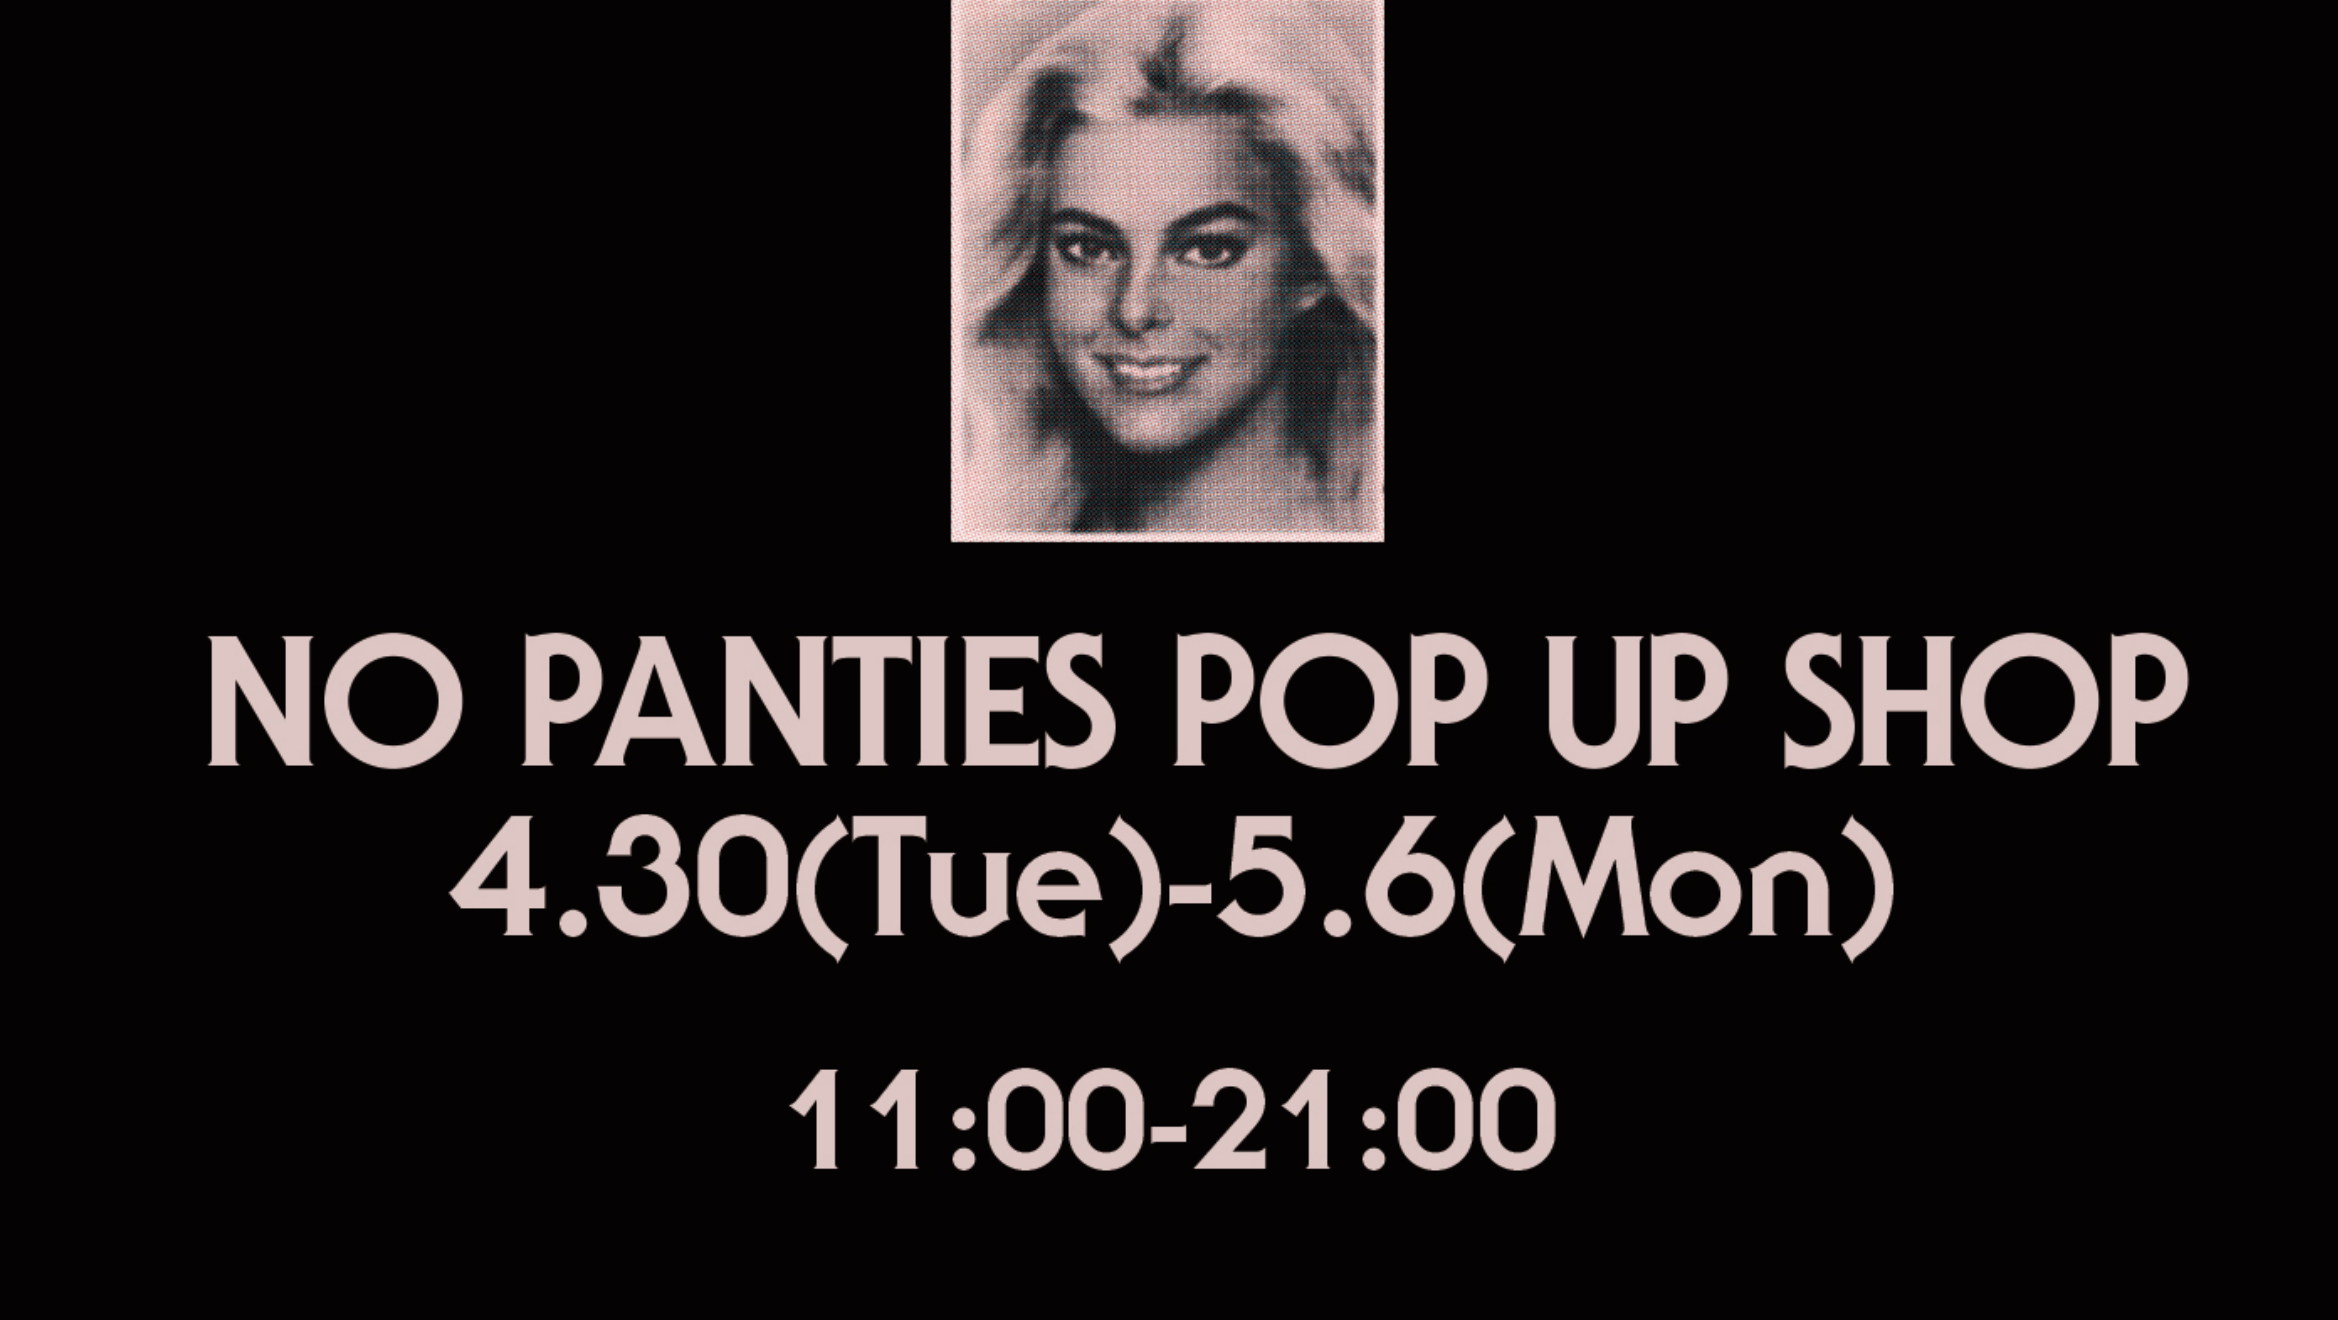 NO PANTIES POPUP SHOP